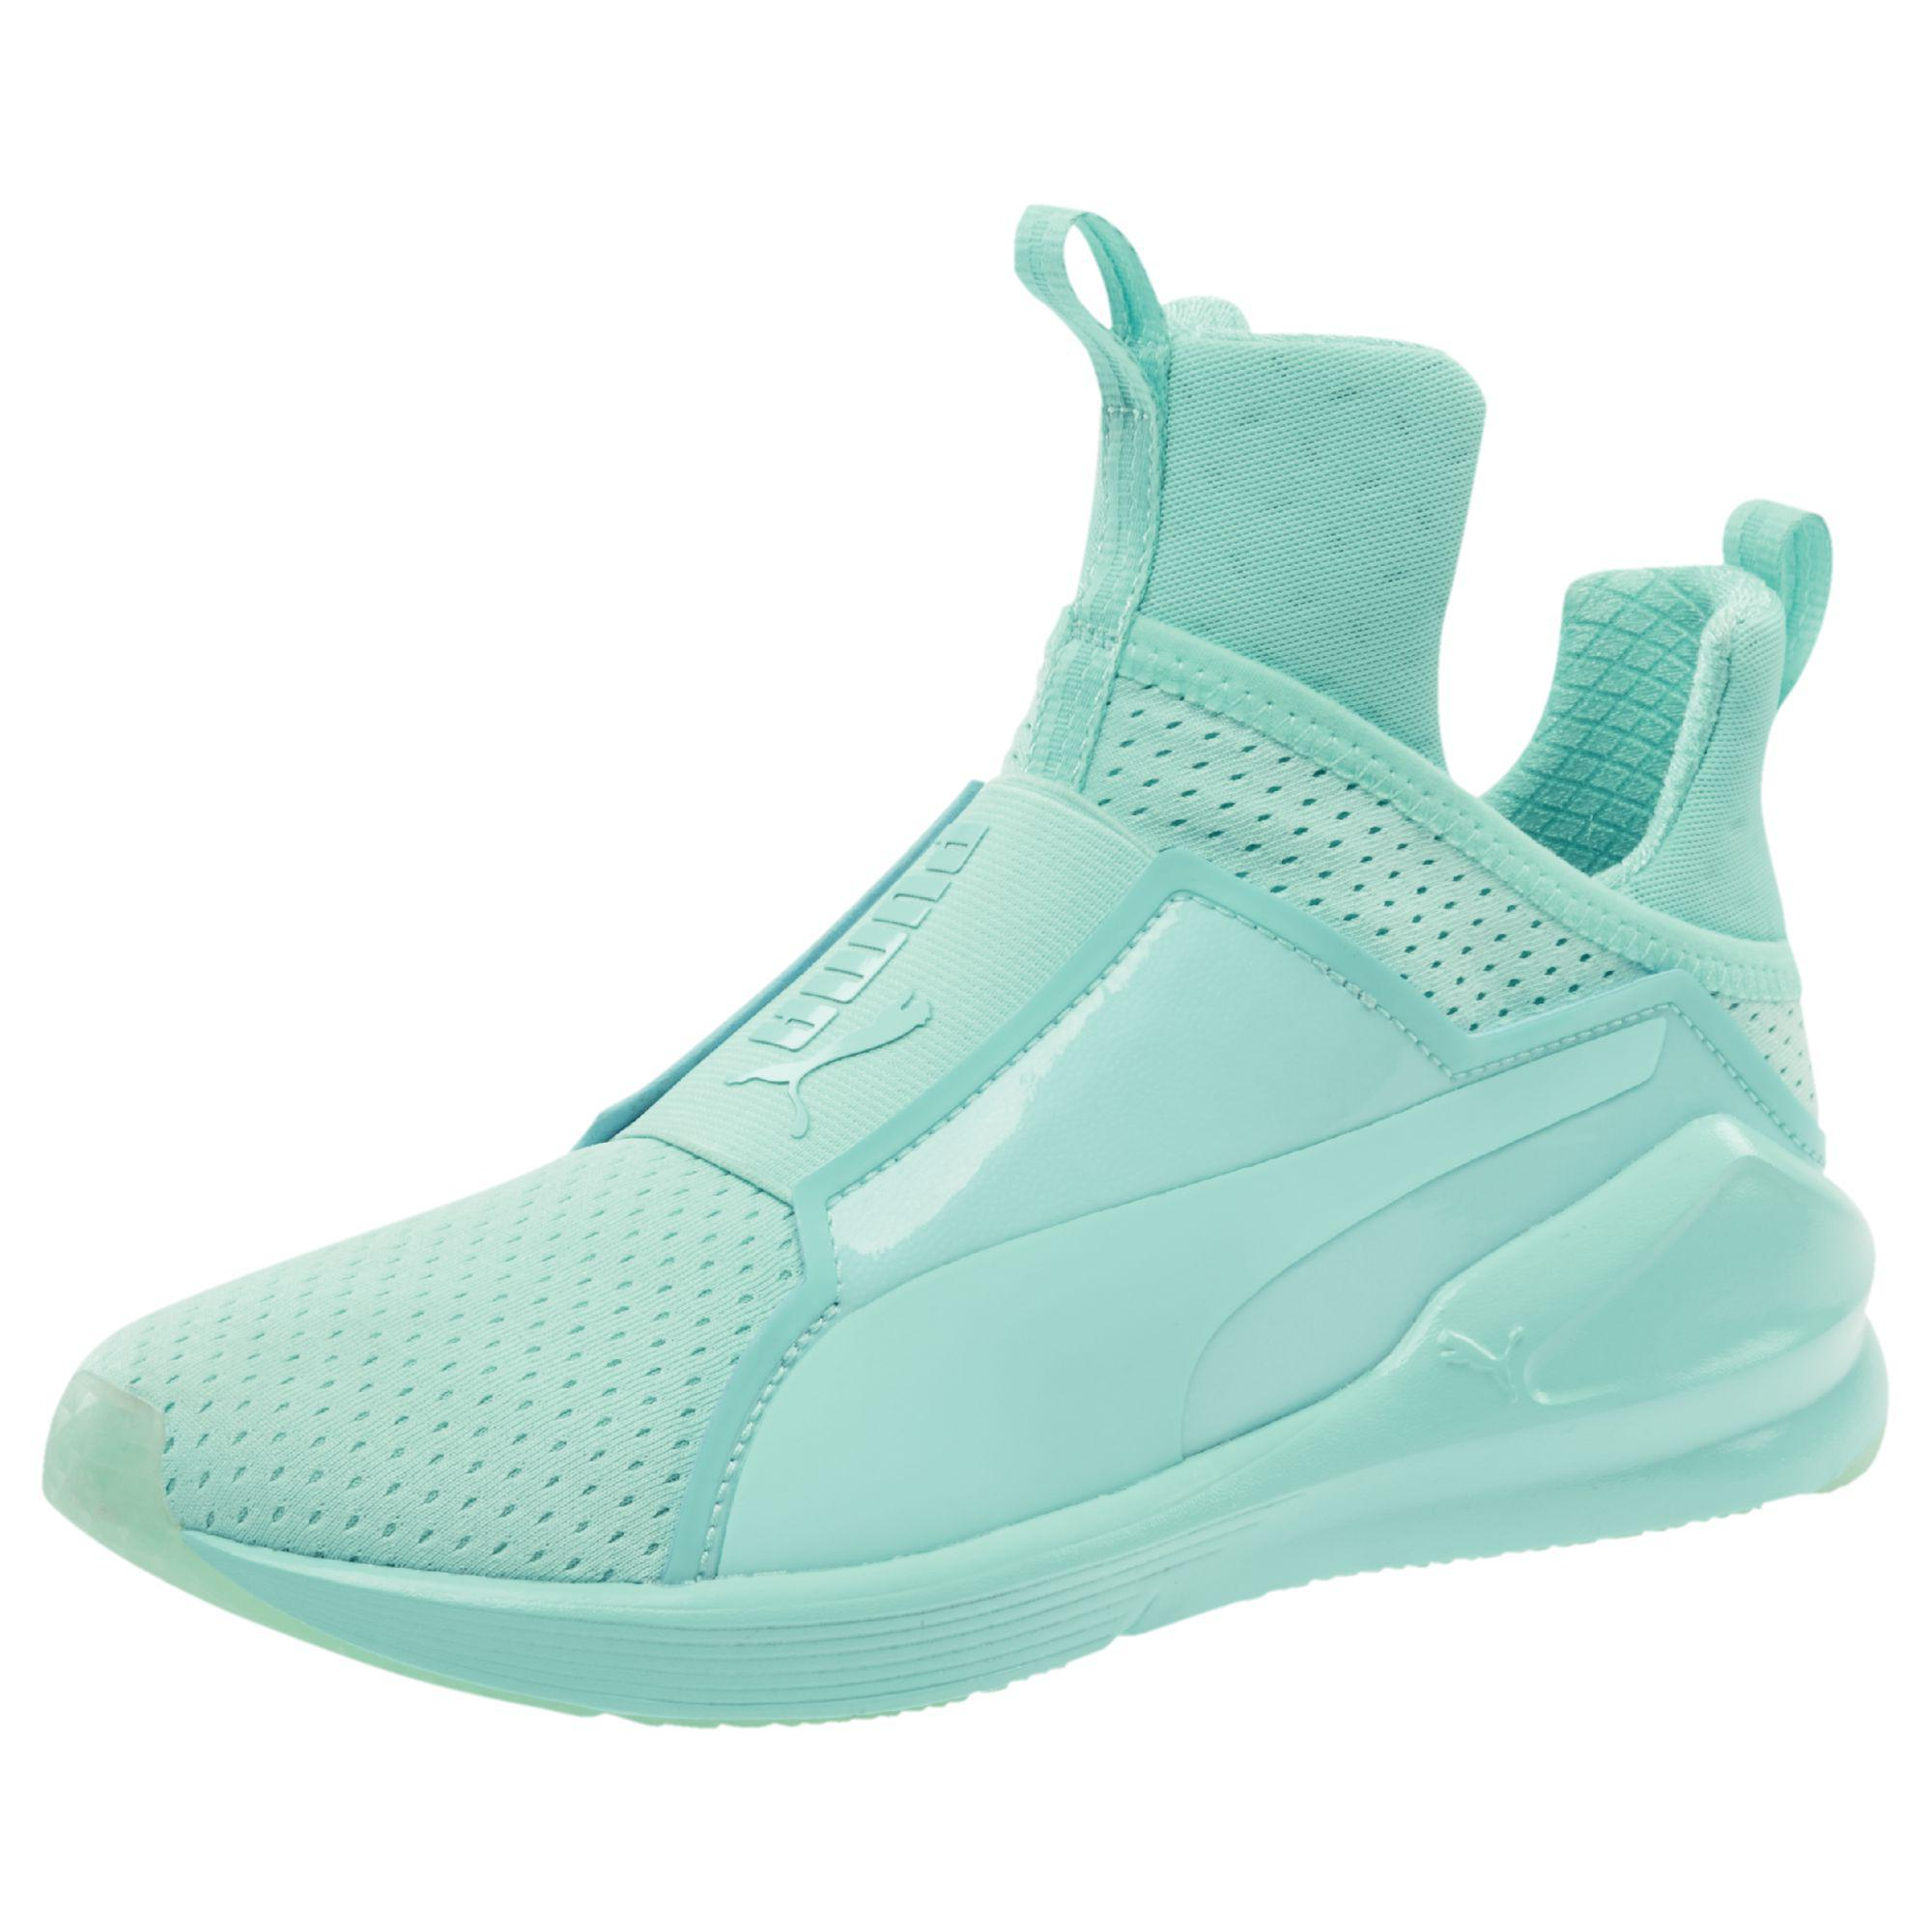 Kylie Jenner Puma Shoes Price